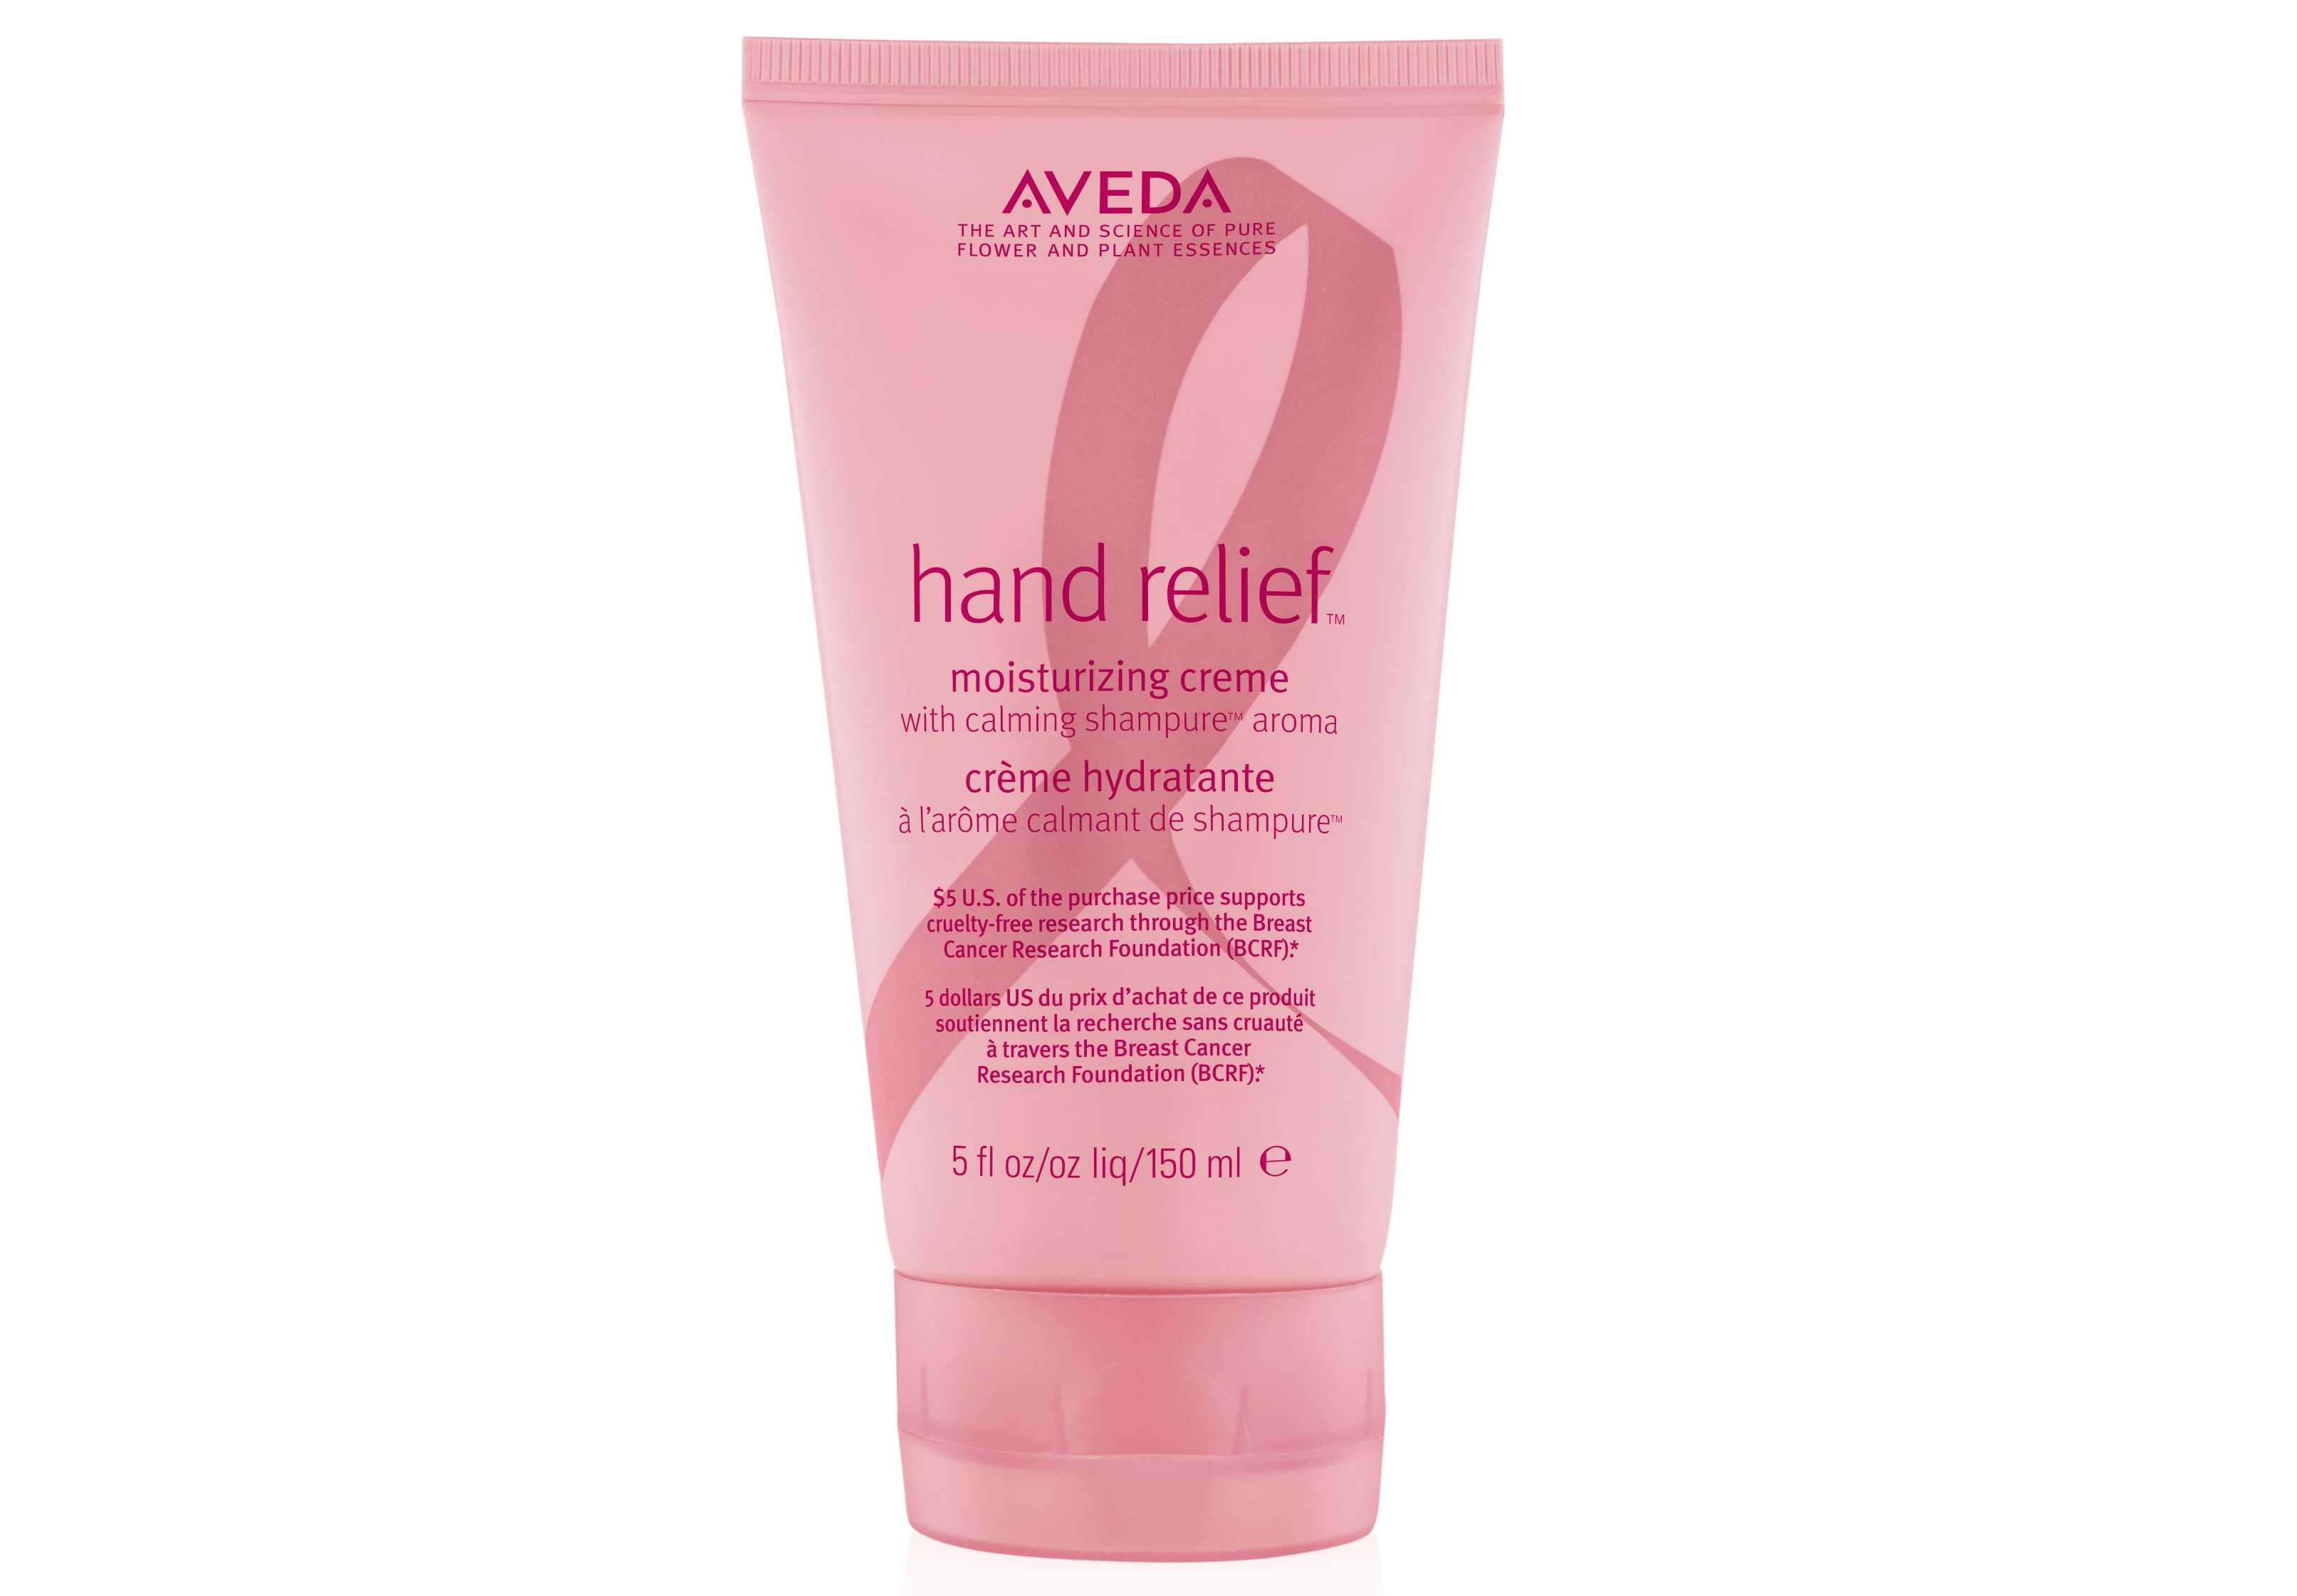 Aveda Limited Edition Hand Relief Moisturizing Creme